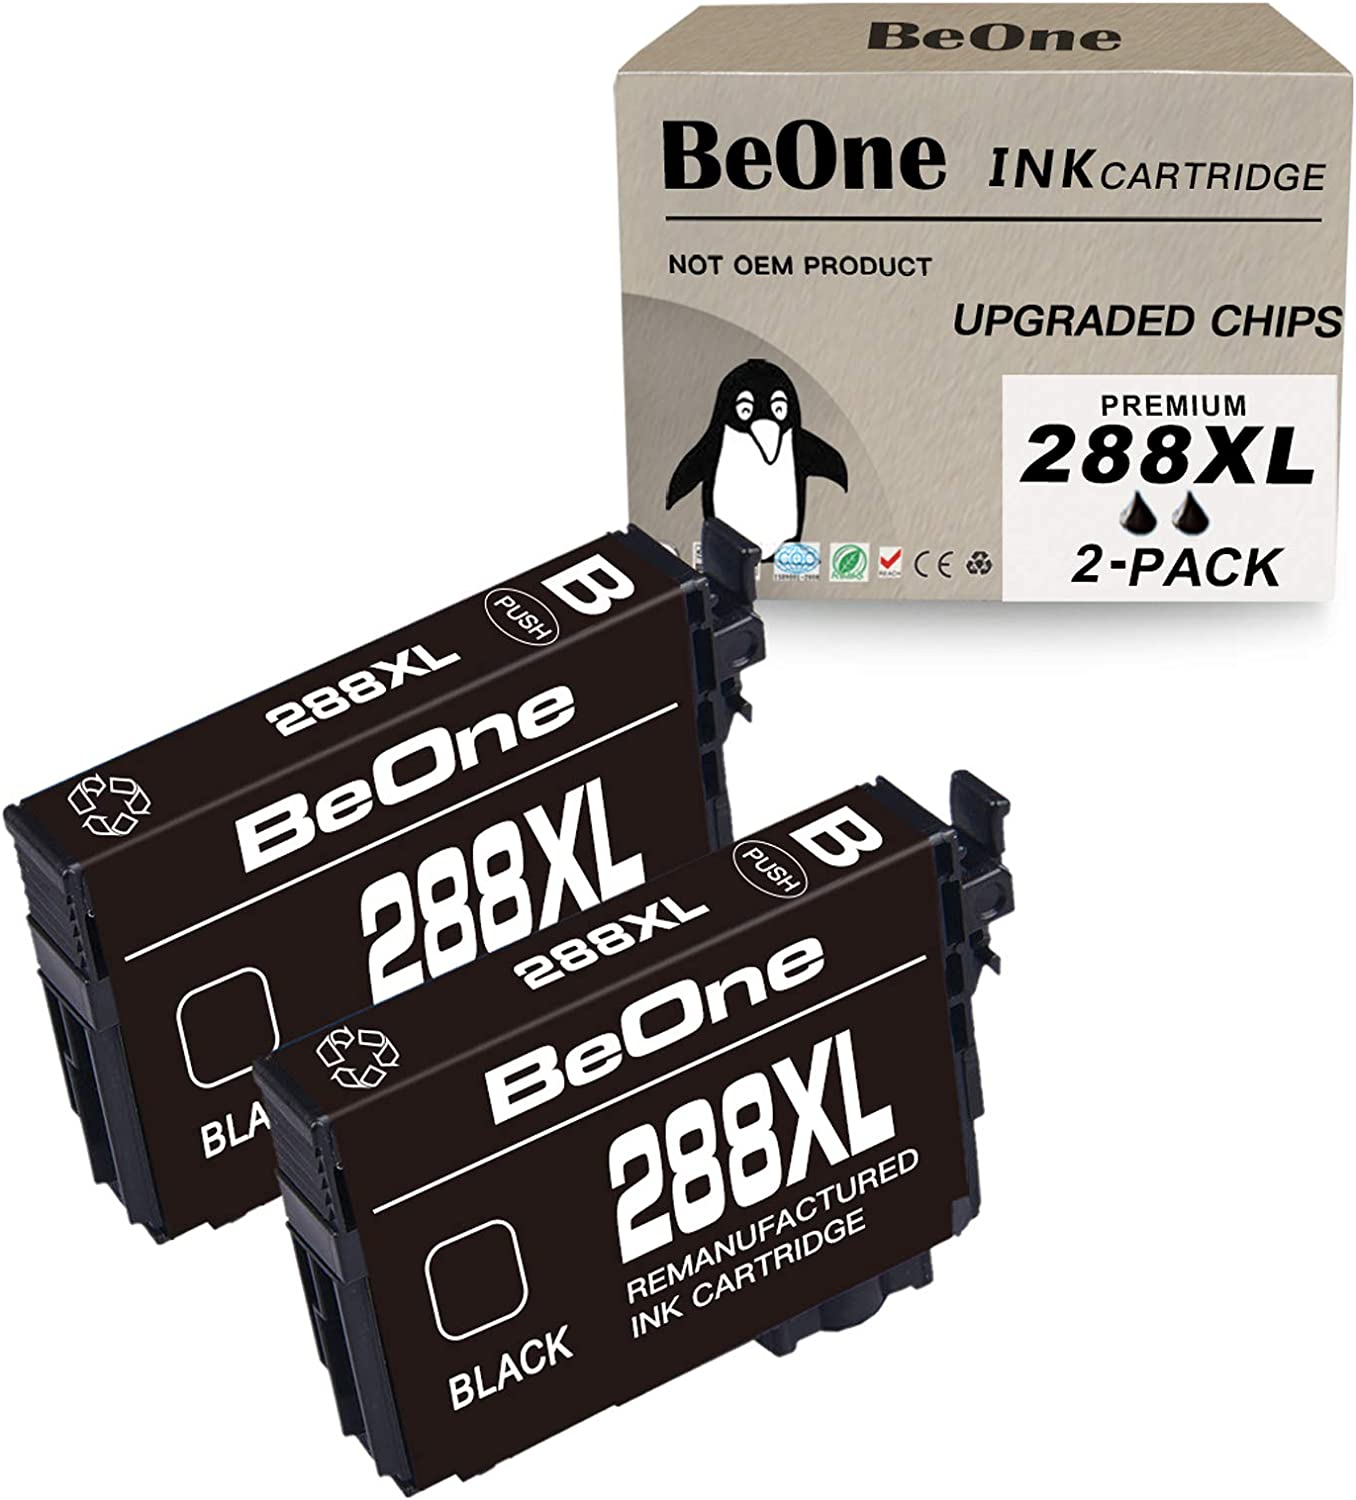 BeOne Remanufactured Ink Cartridge Replacement for Epson 288 XL 288XL T288 T288XL Black 2-Pack Use with Expression Expression Home XP-440 XP-340 XP-446 XP-330 XP-430 XP-434 XP440 XP340 XP446 XP330